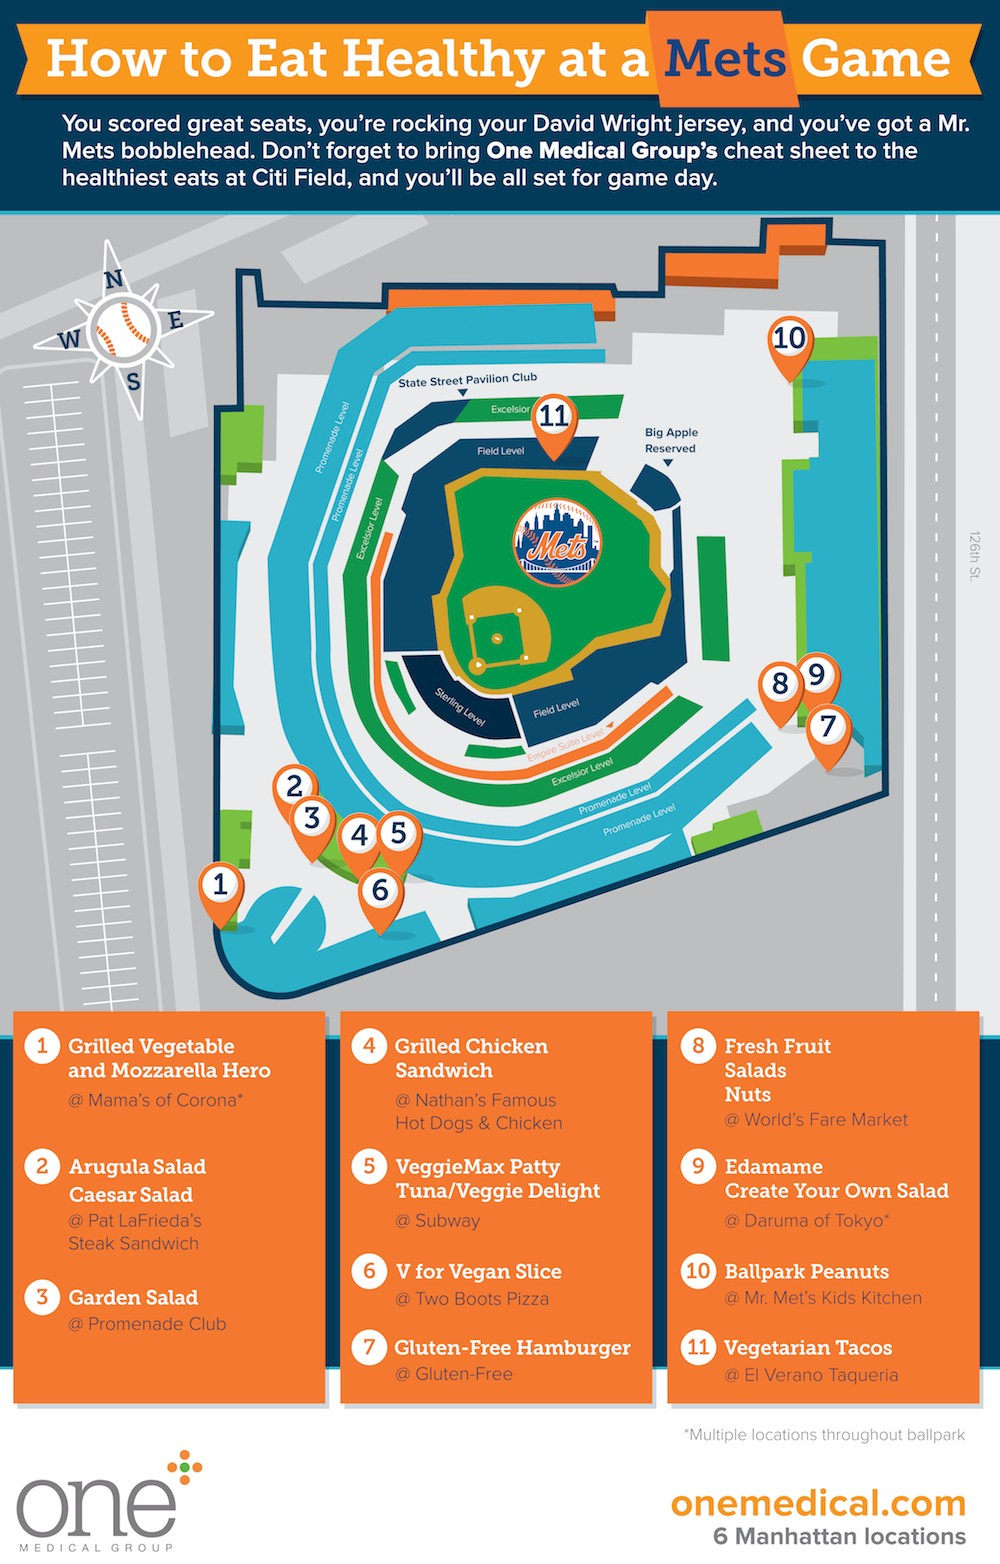 How to eat healthy at Citi Field - Mets Cetera